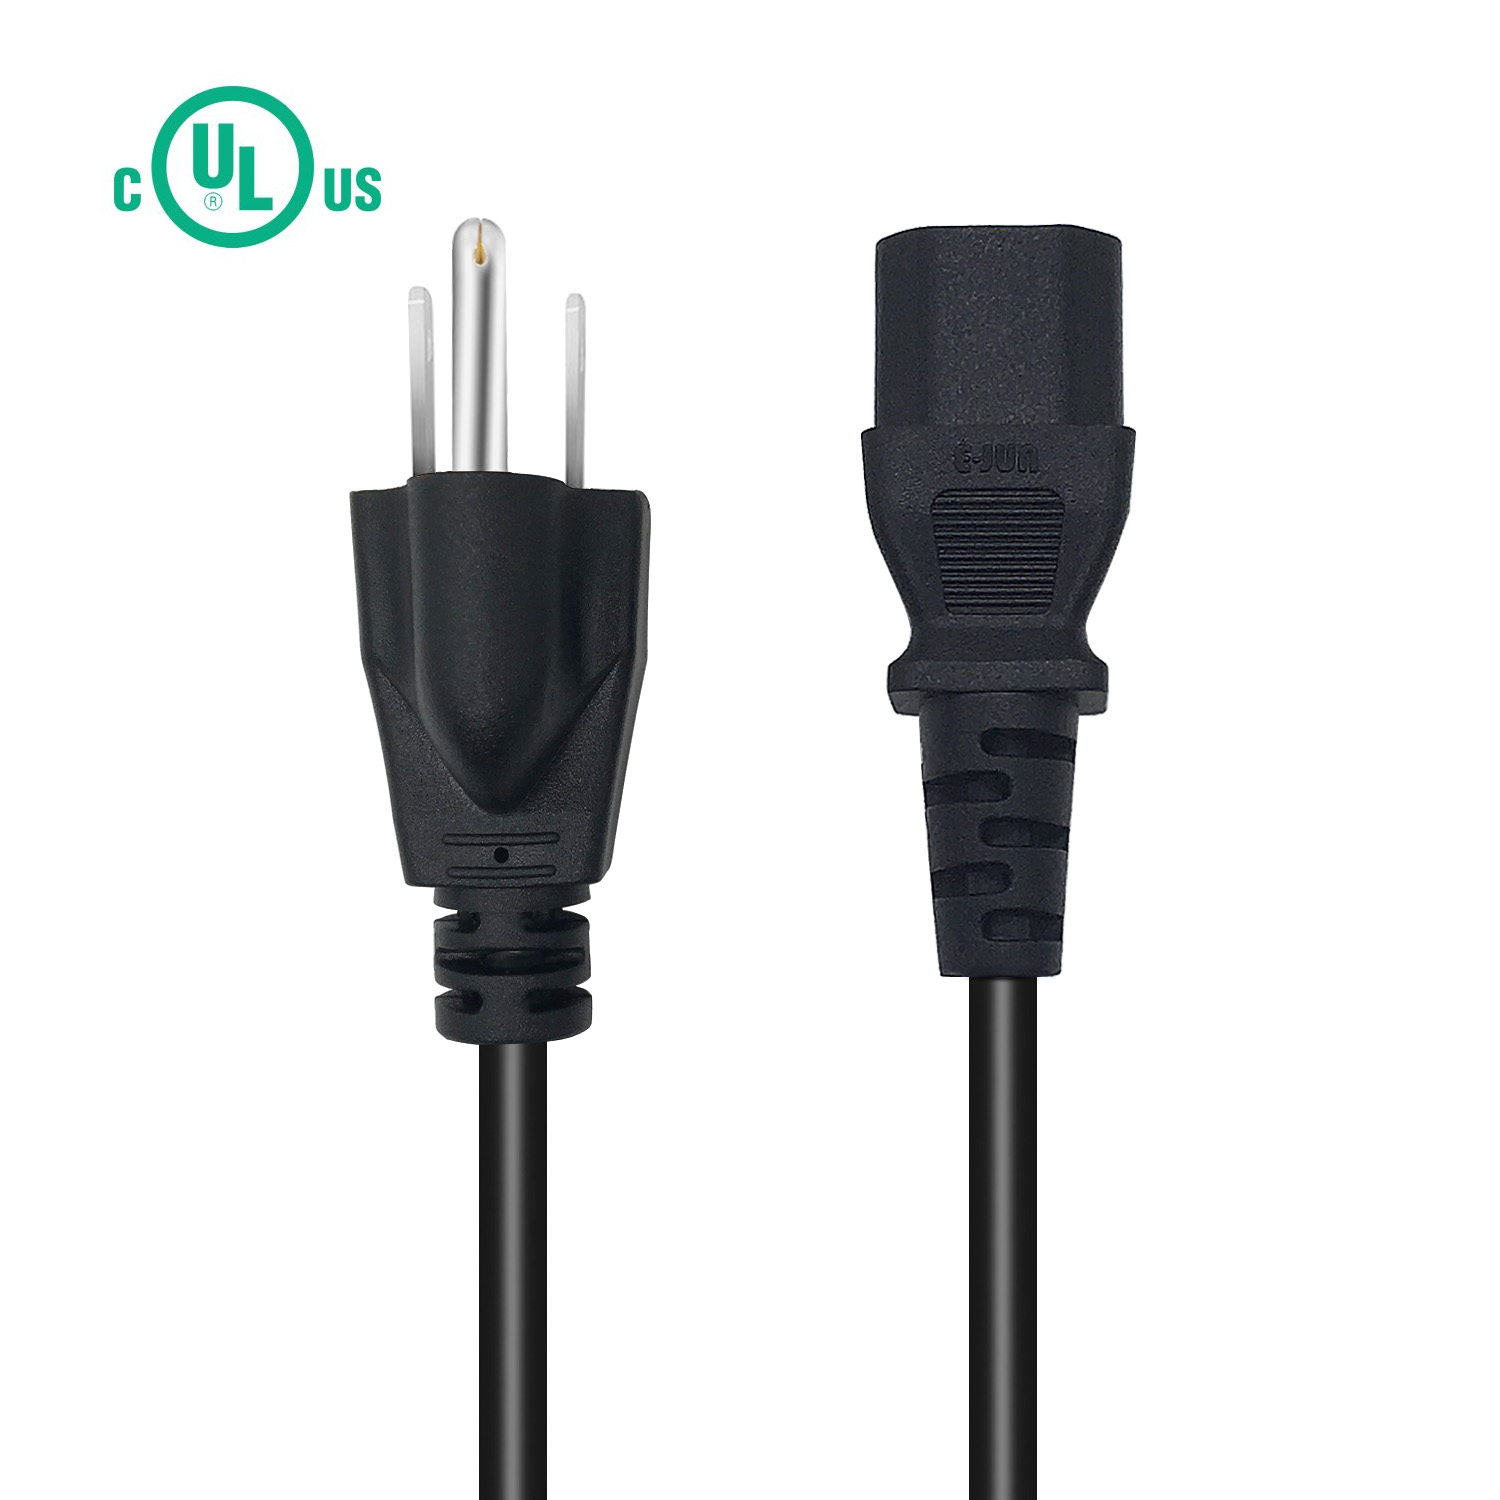 LCD Plasma 6Ft Ac Power Cord Cable for Computer TV printer